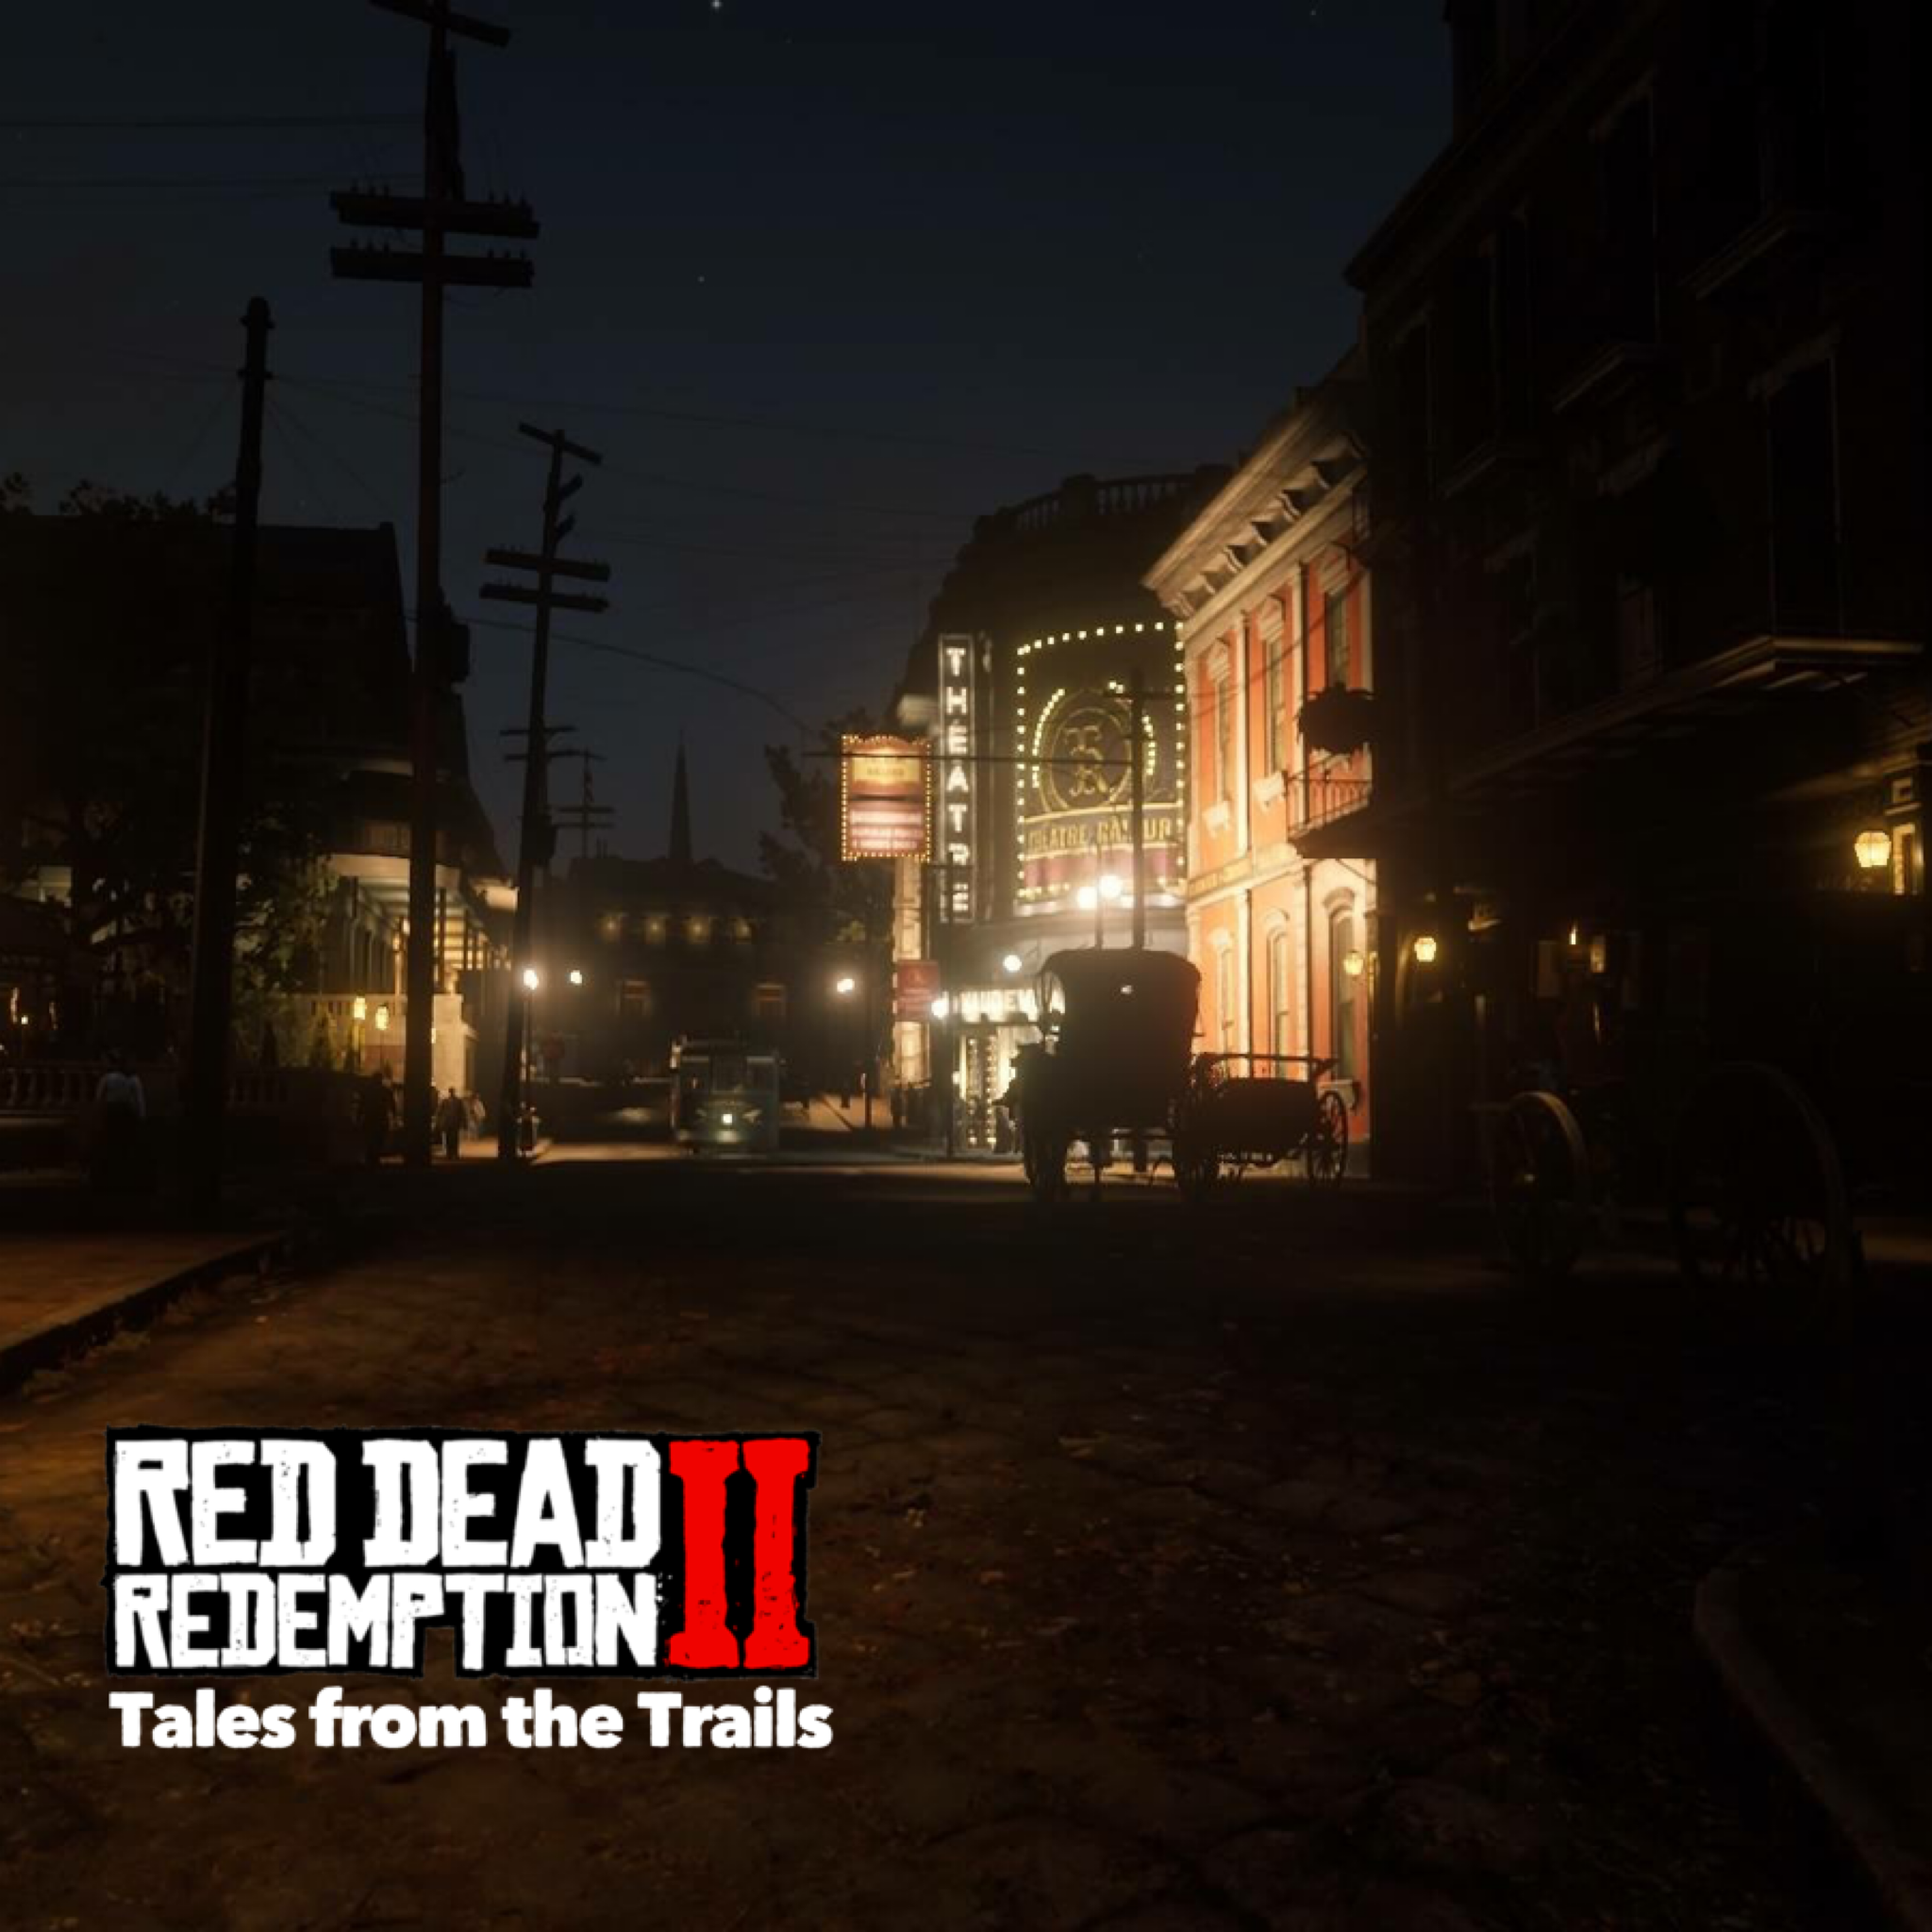 Red Dead Redemption 2 Saint Denis At Night Red Dead Redemption Red Dead Redemption Ii Saint Denis